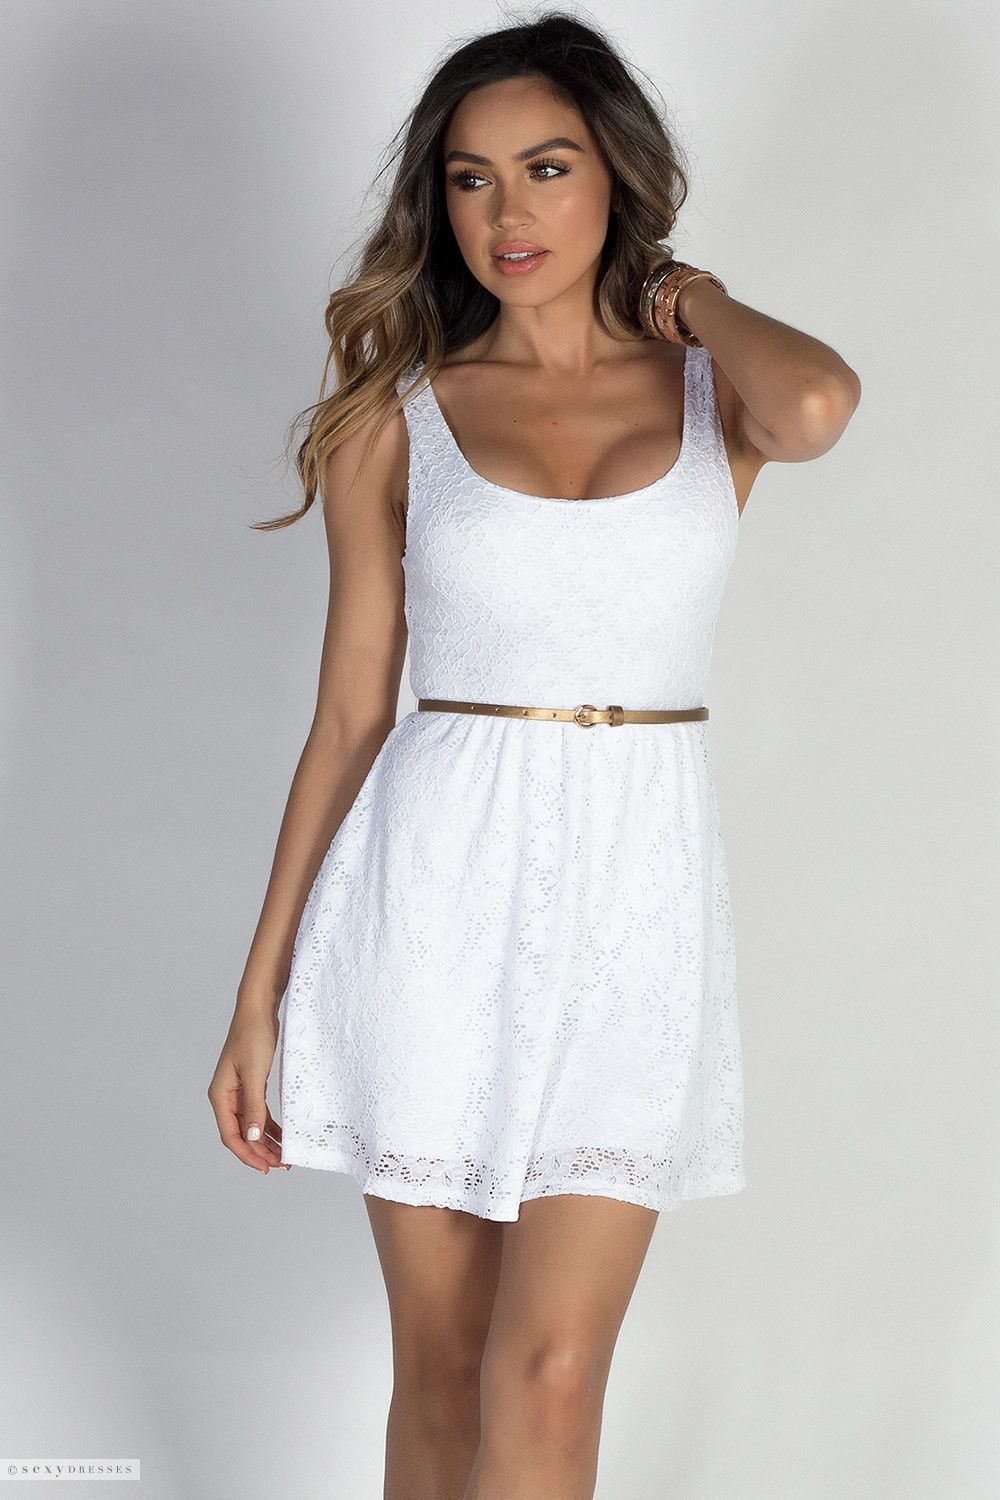 Scoop Neck Wide Tank Strap A Line White Lace Skater Dress With Belt Casual Dress Outfits Cute Casual Dresses Little White Dresses [ 1500 x 1000 Pixel ]